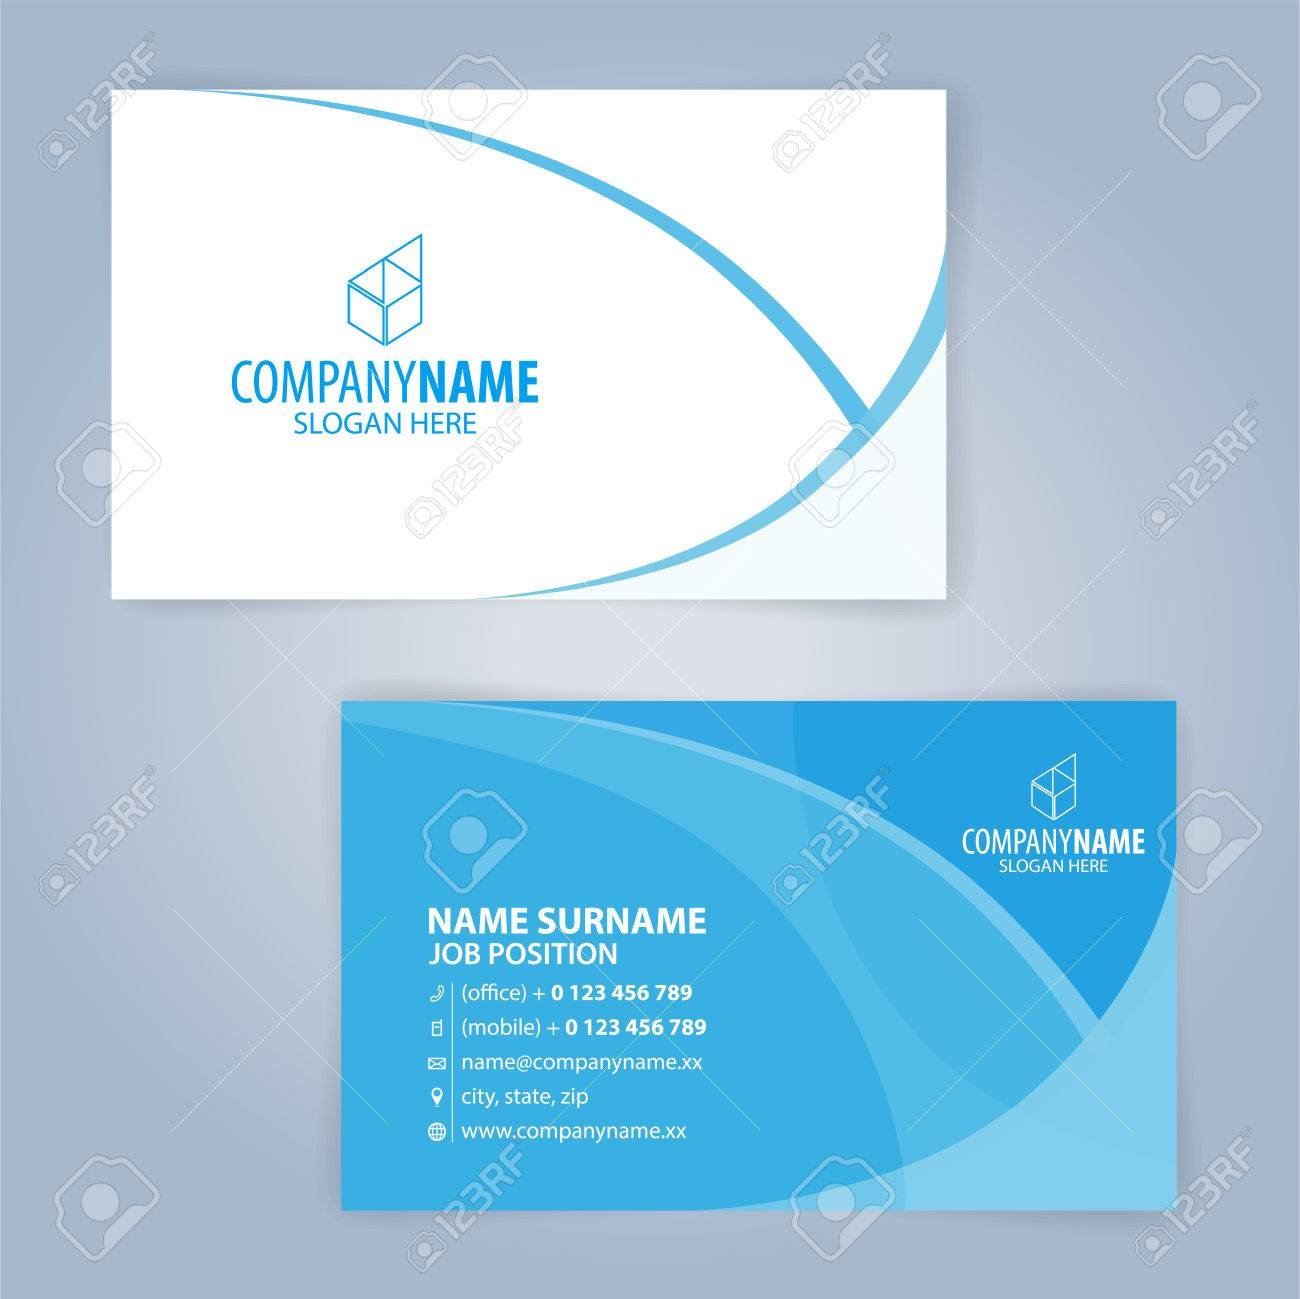 Blue And White Modern Business Card Template Illustration Vector 10